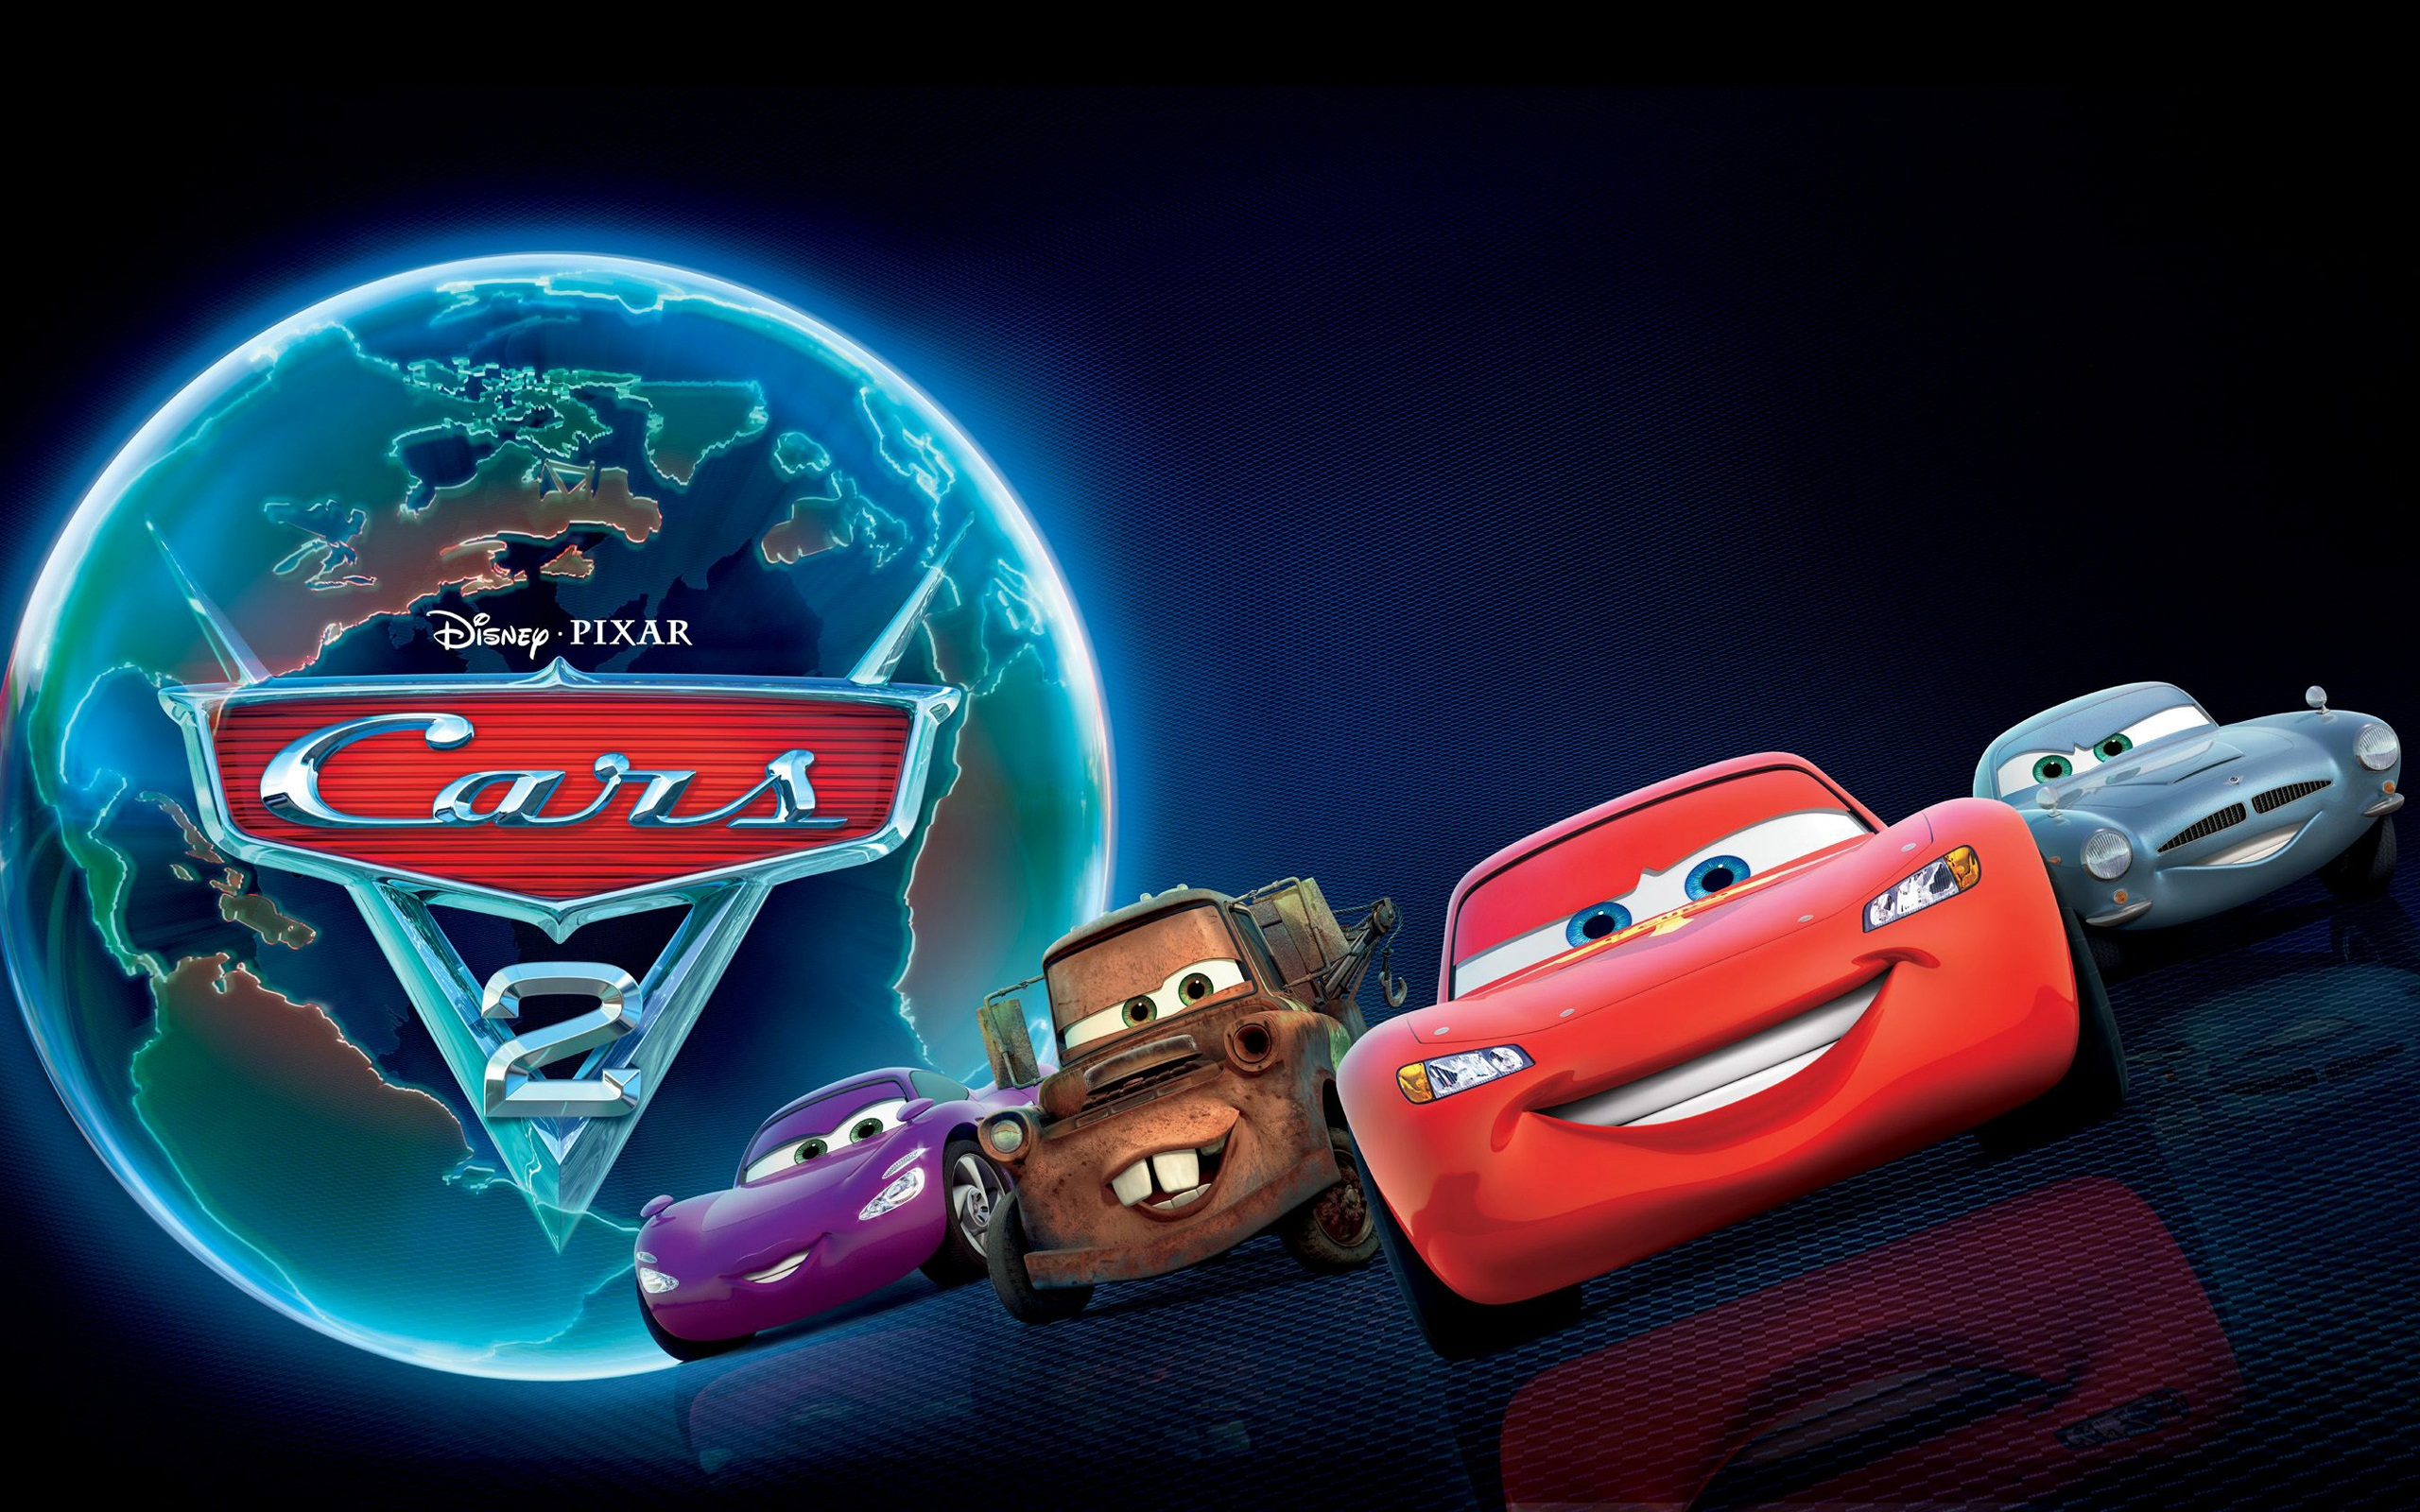 How to download cars 3 (2017) full movie? Youtube.